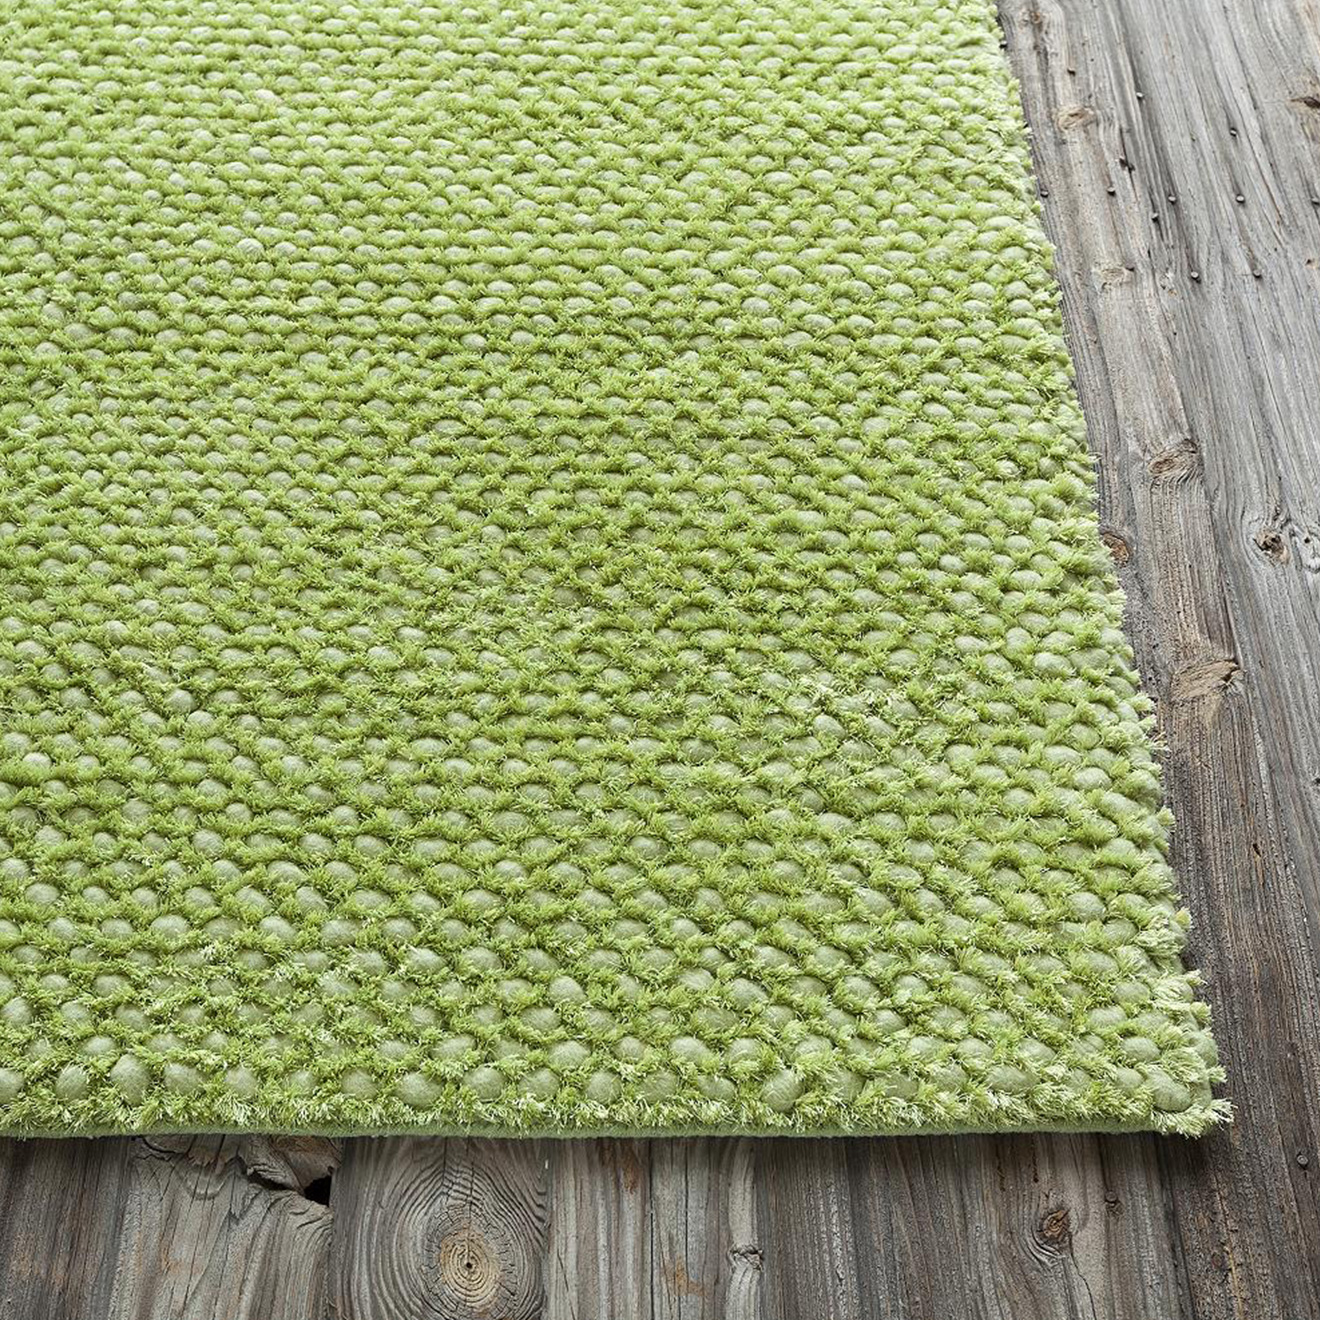 Strata Rug by Chandra (Rug Traffic Level: 4)